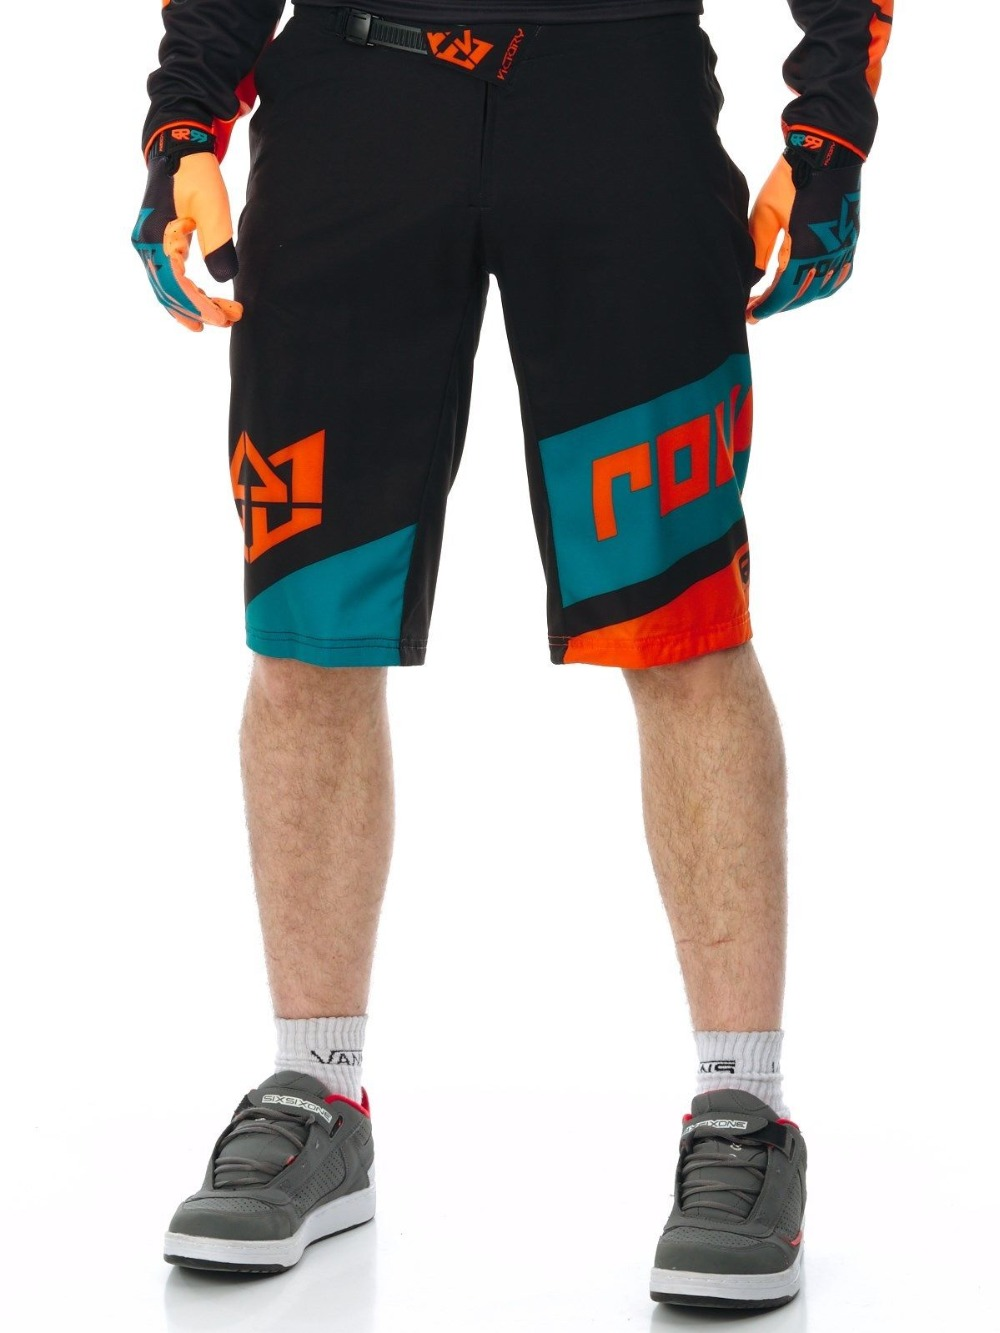 2019 New Summer Motocross Breathable Short Pants Motorcycle Downhill Cycling Off-road Mtb Mx Dh Mountain Bike Moto Short Pants.